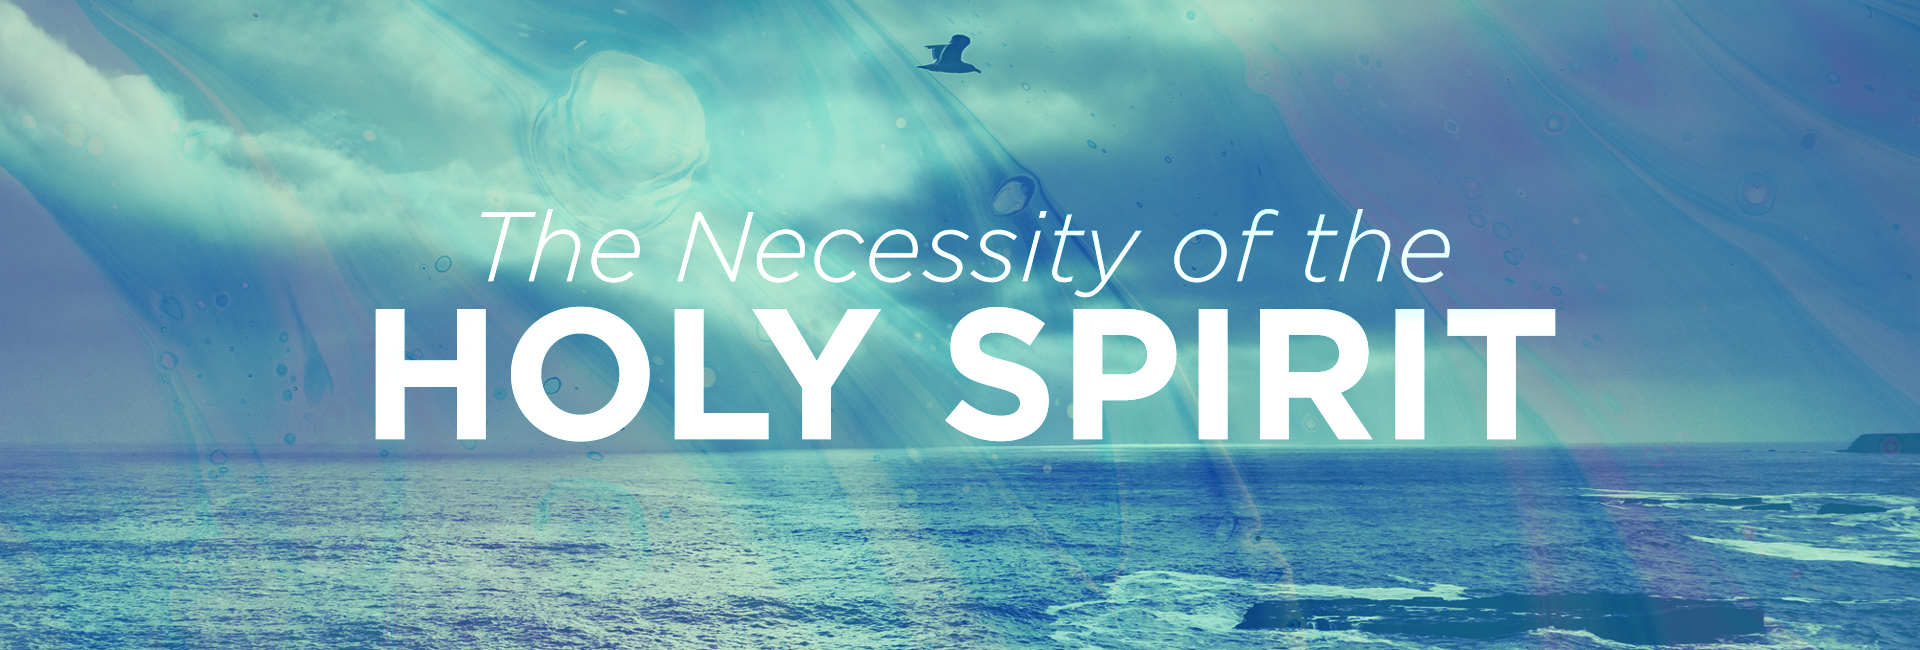 The Necessity of the Holy Spirit